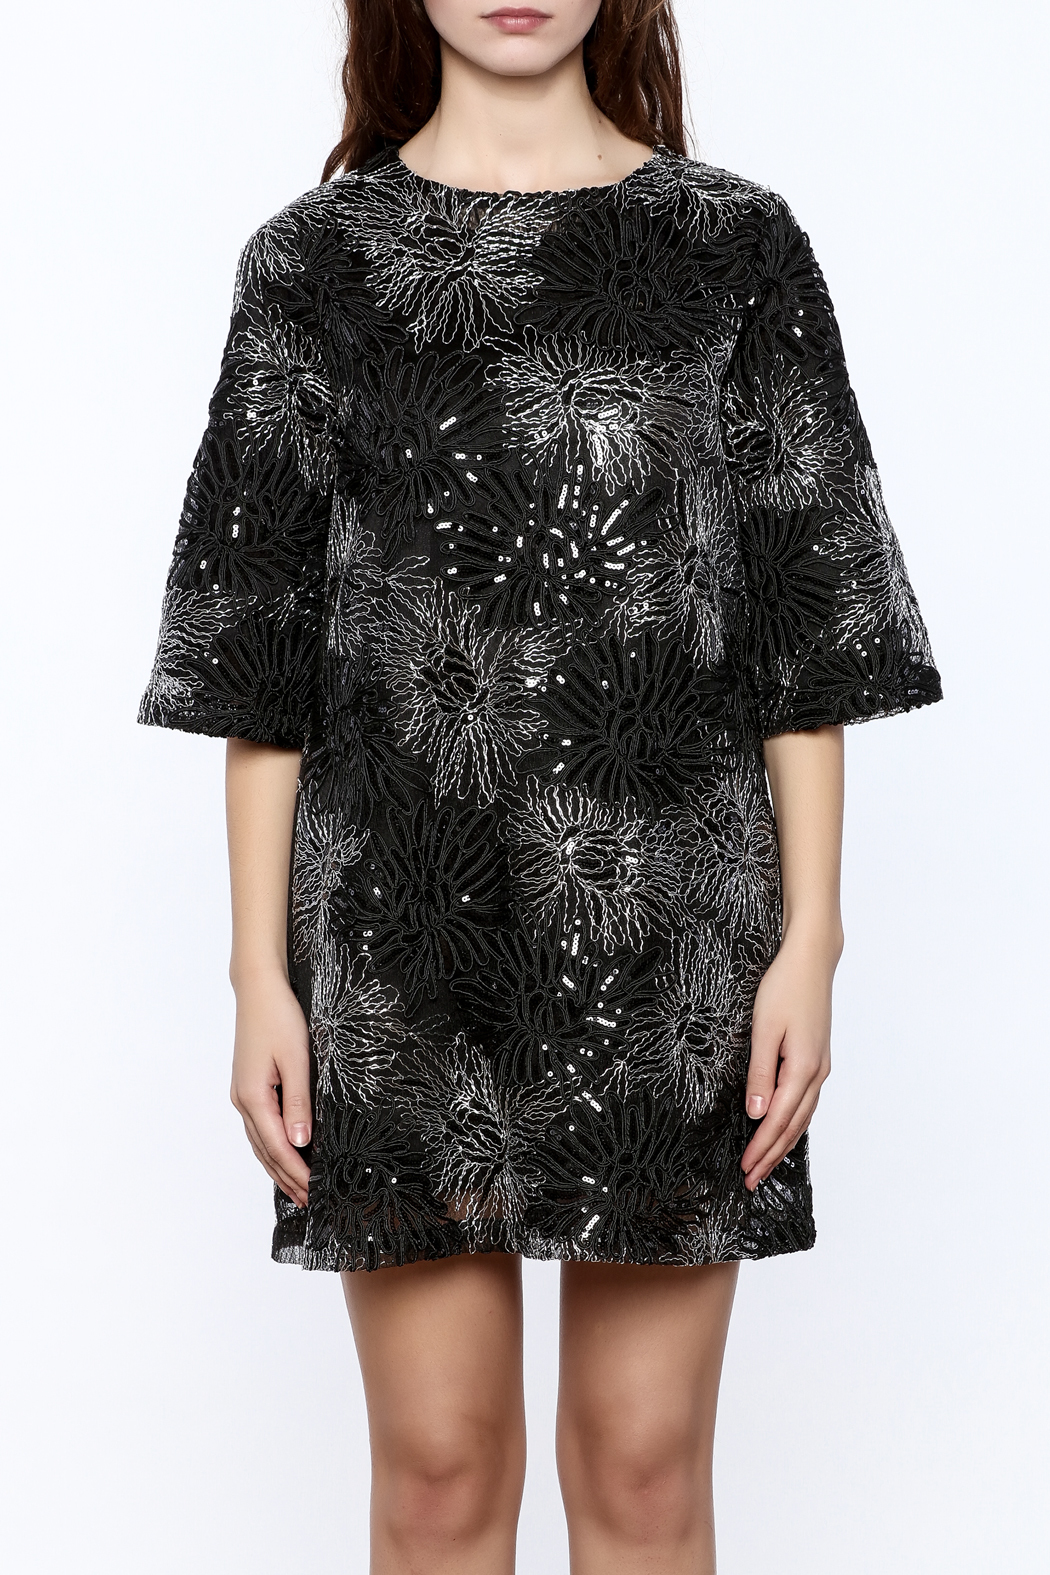 beulah Black And Silver Sequined Shift Dress - Side Cropped Image